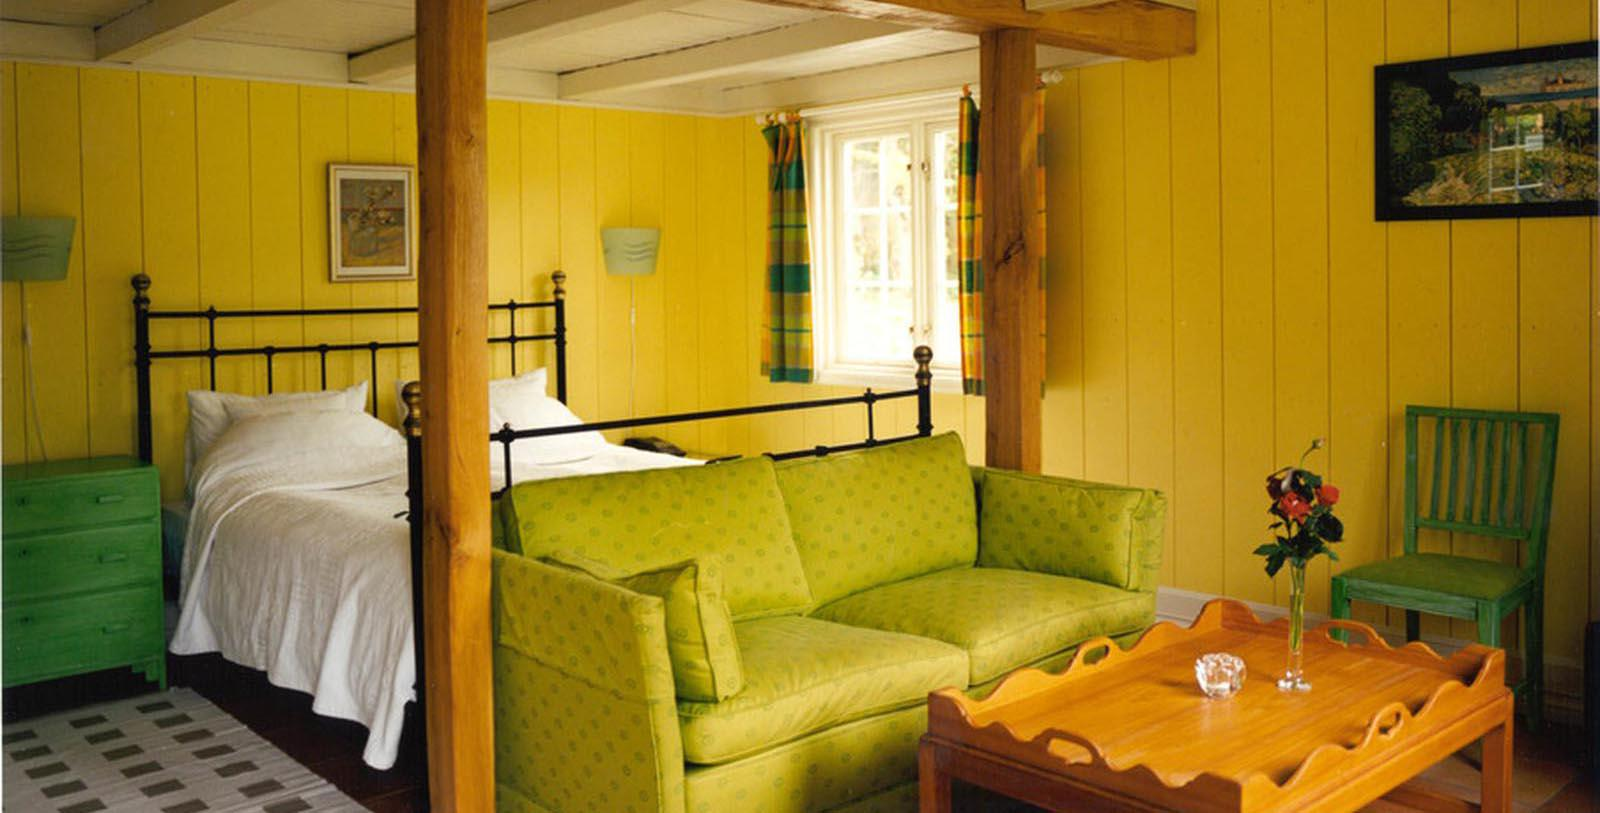 Image of guestroom Engø Gård, 1845, Member of Historic Hotels Worldwide, in Tjome, Norway, Accommodations